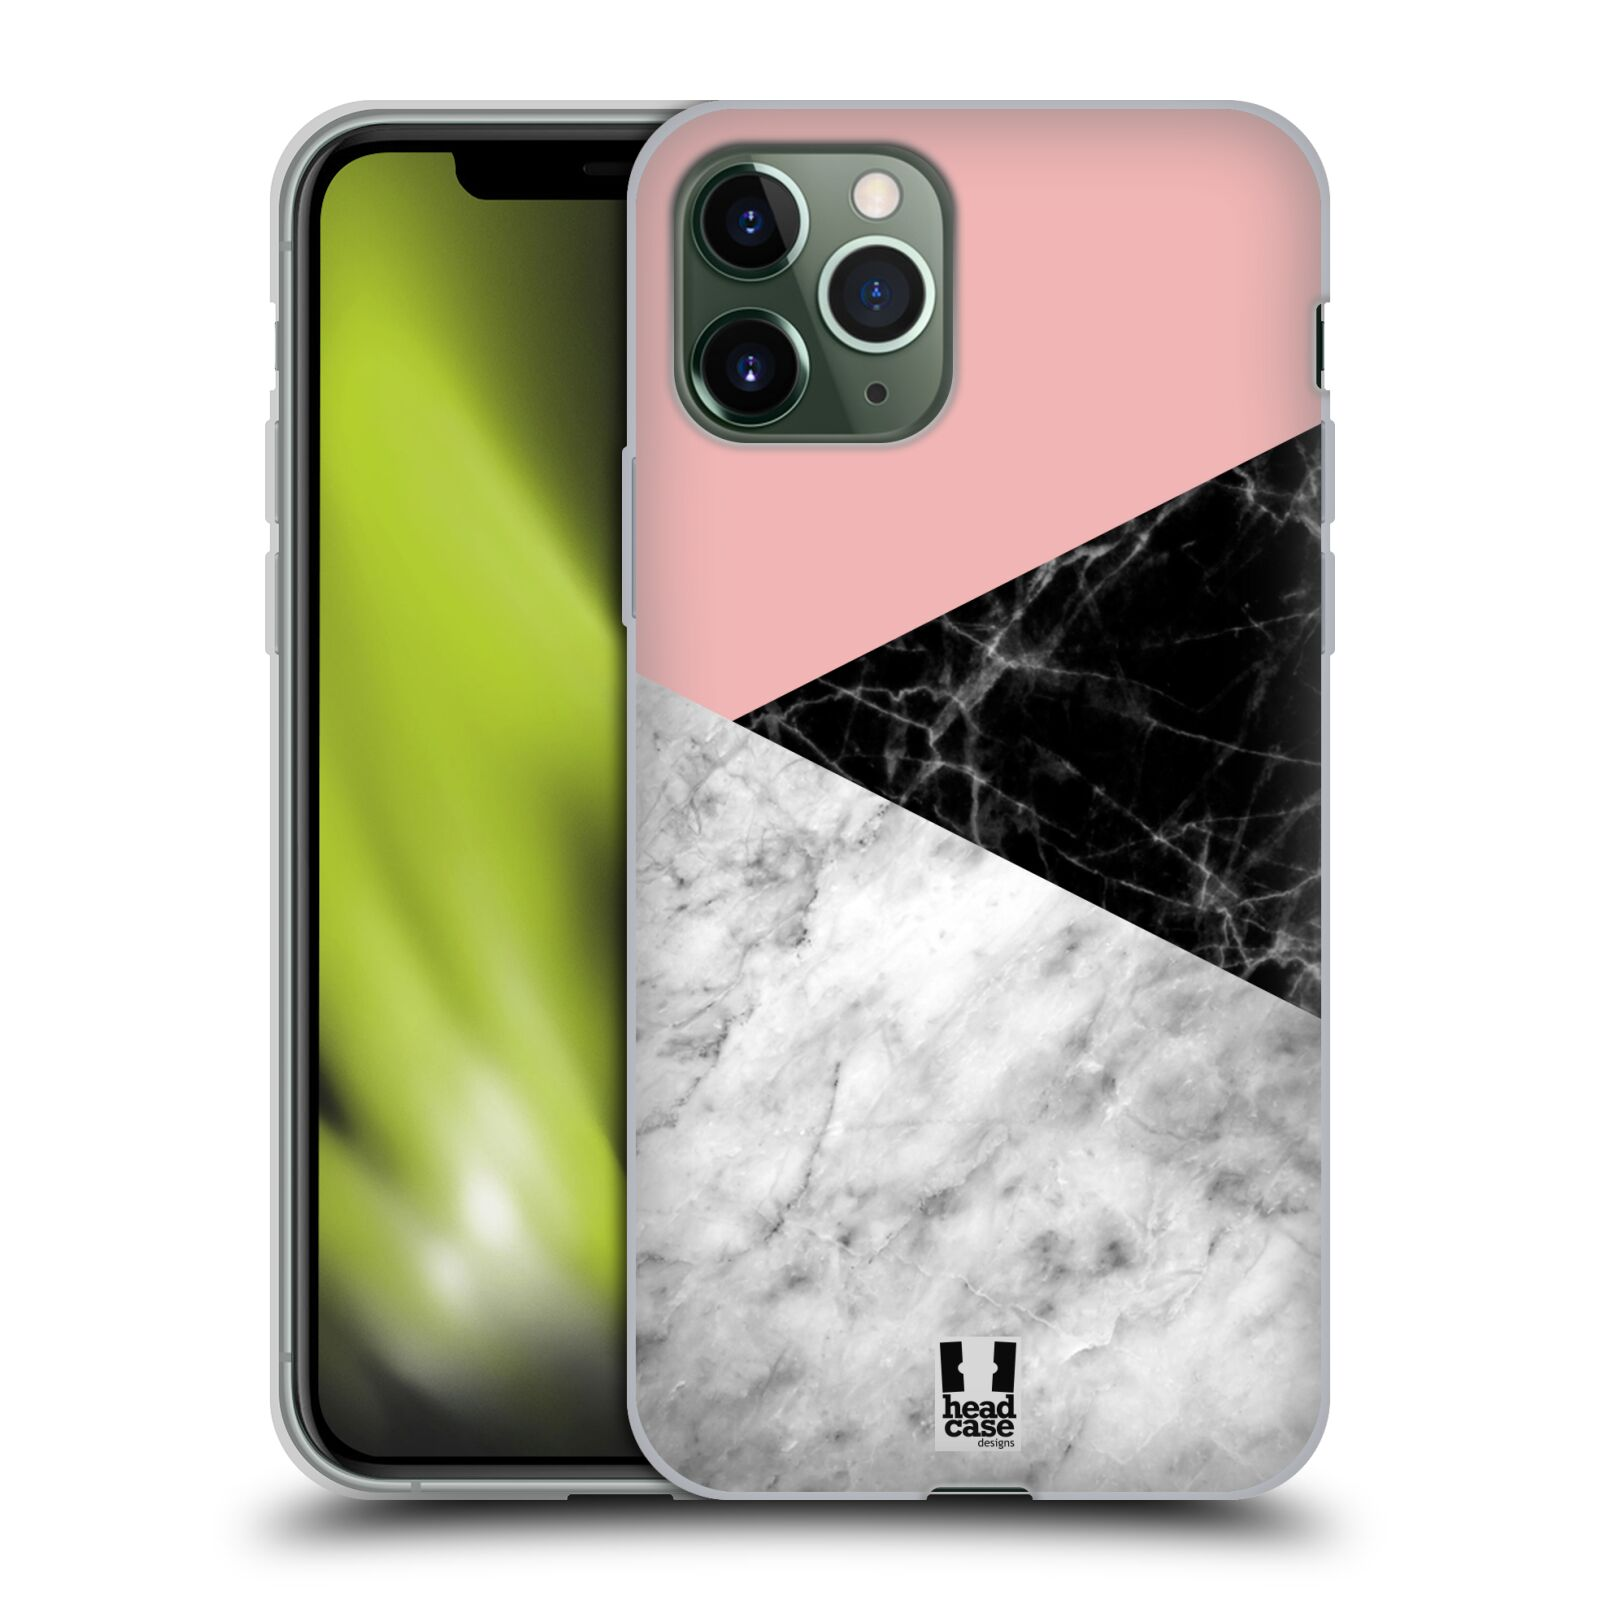 lagerfeld obaly iphone 6s plus - Silikonové pouzdro na mobil Apple iPhone 11 Pro - Head Case - Mramor mix